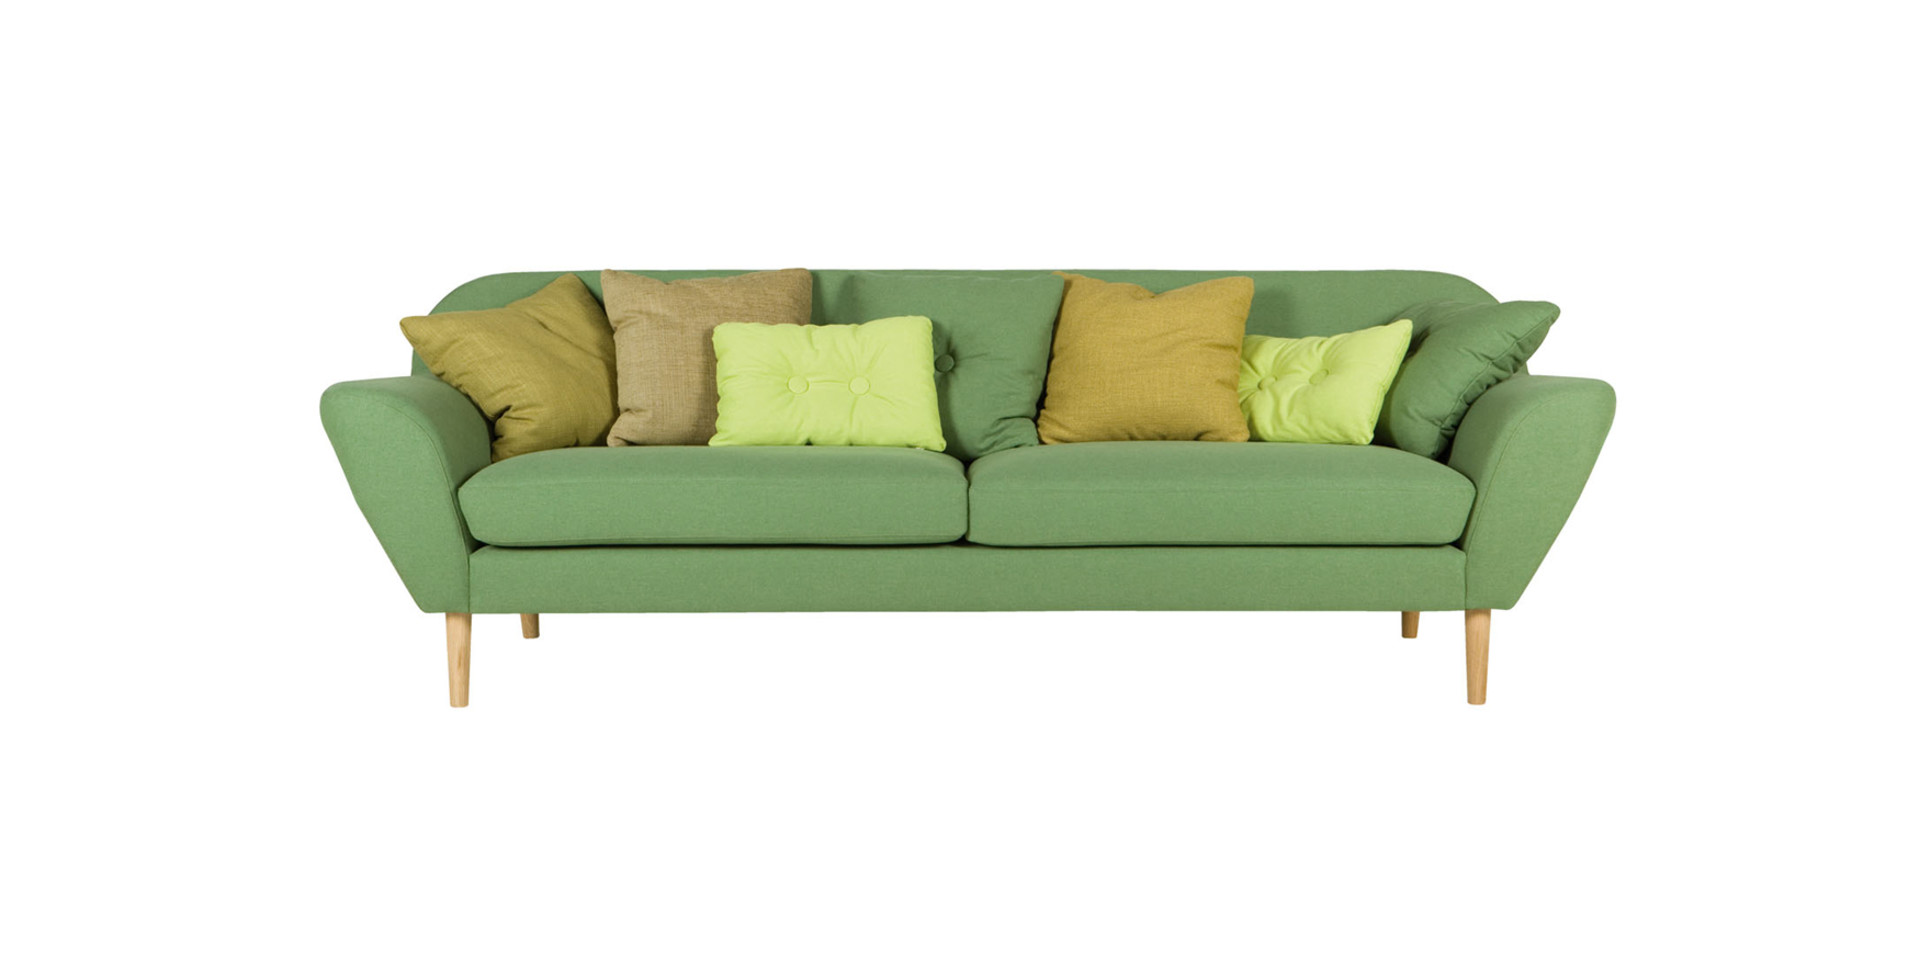 sits-poppy-canape-3seater_luis35_green_1